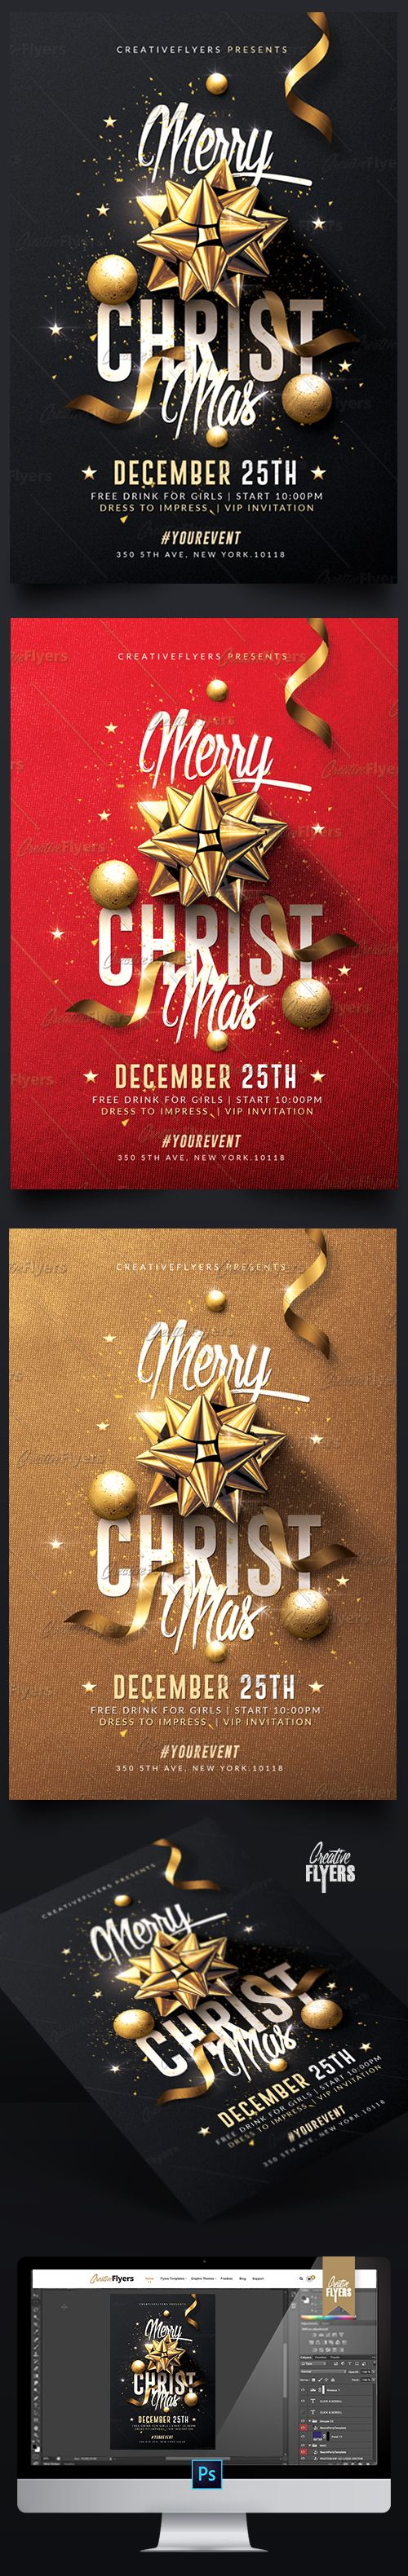 company christmas party invitation templates%0A   CLASSY CHRISTMAS   Flyer Templates   Enjoy downloading the Premium  Photoshop PSD Flyer